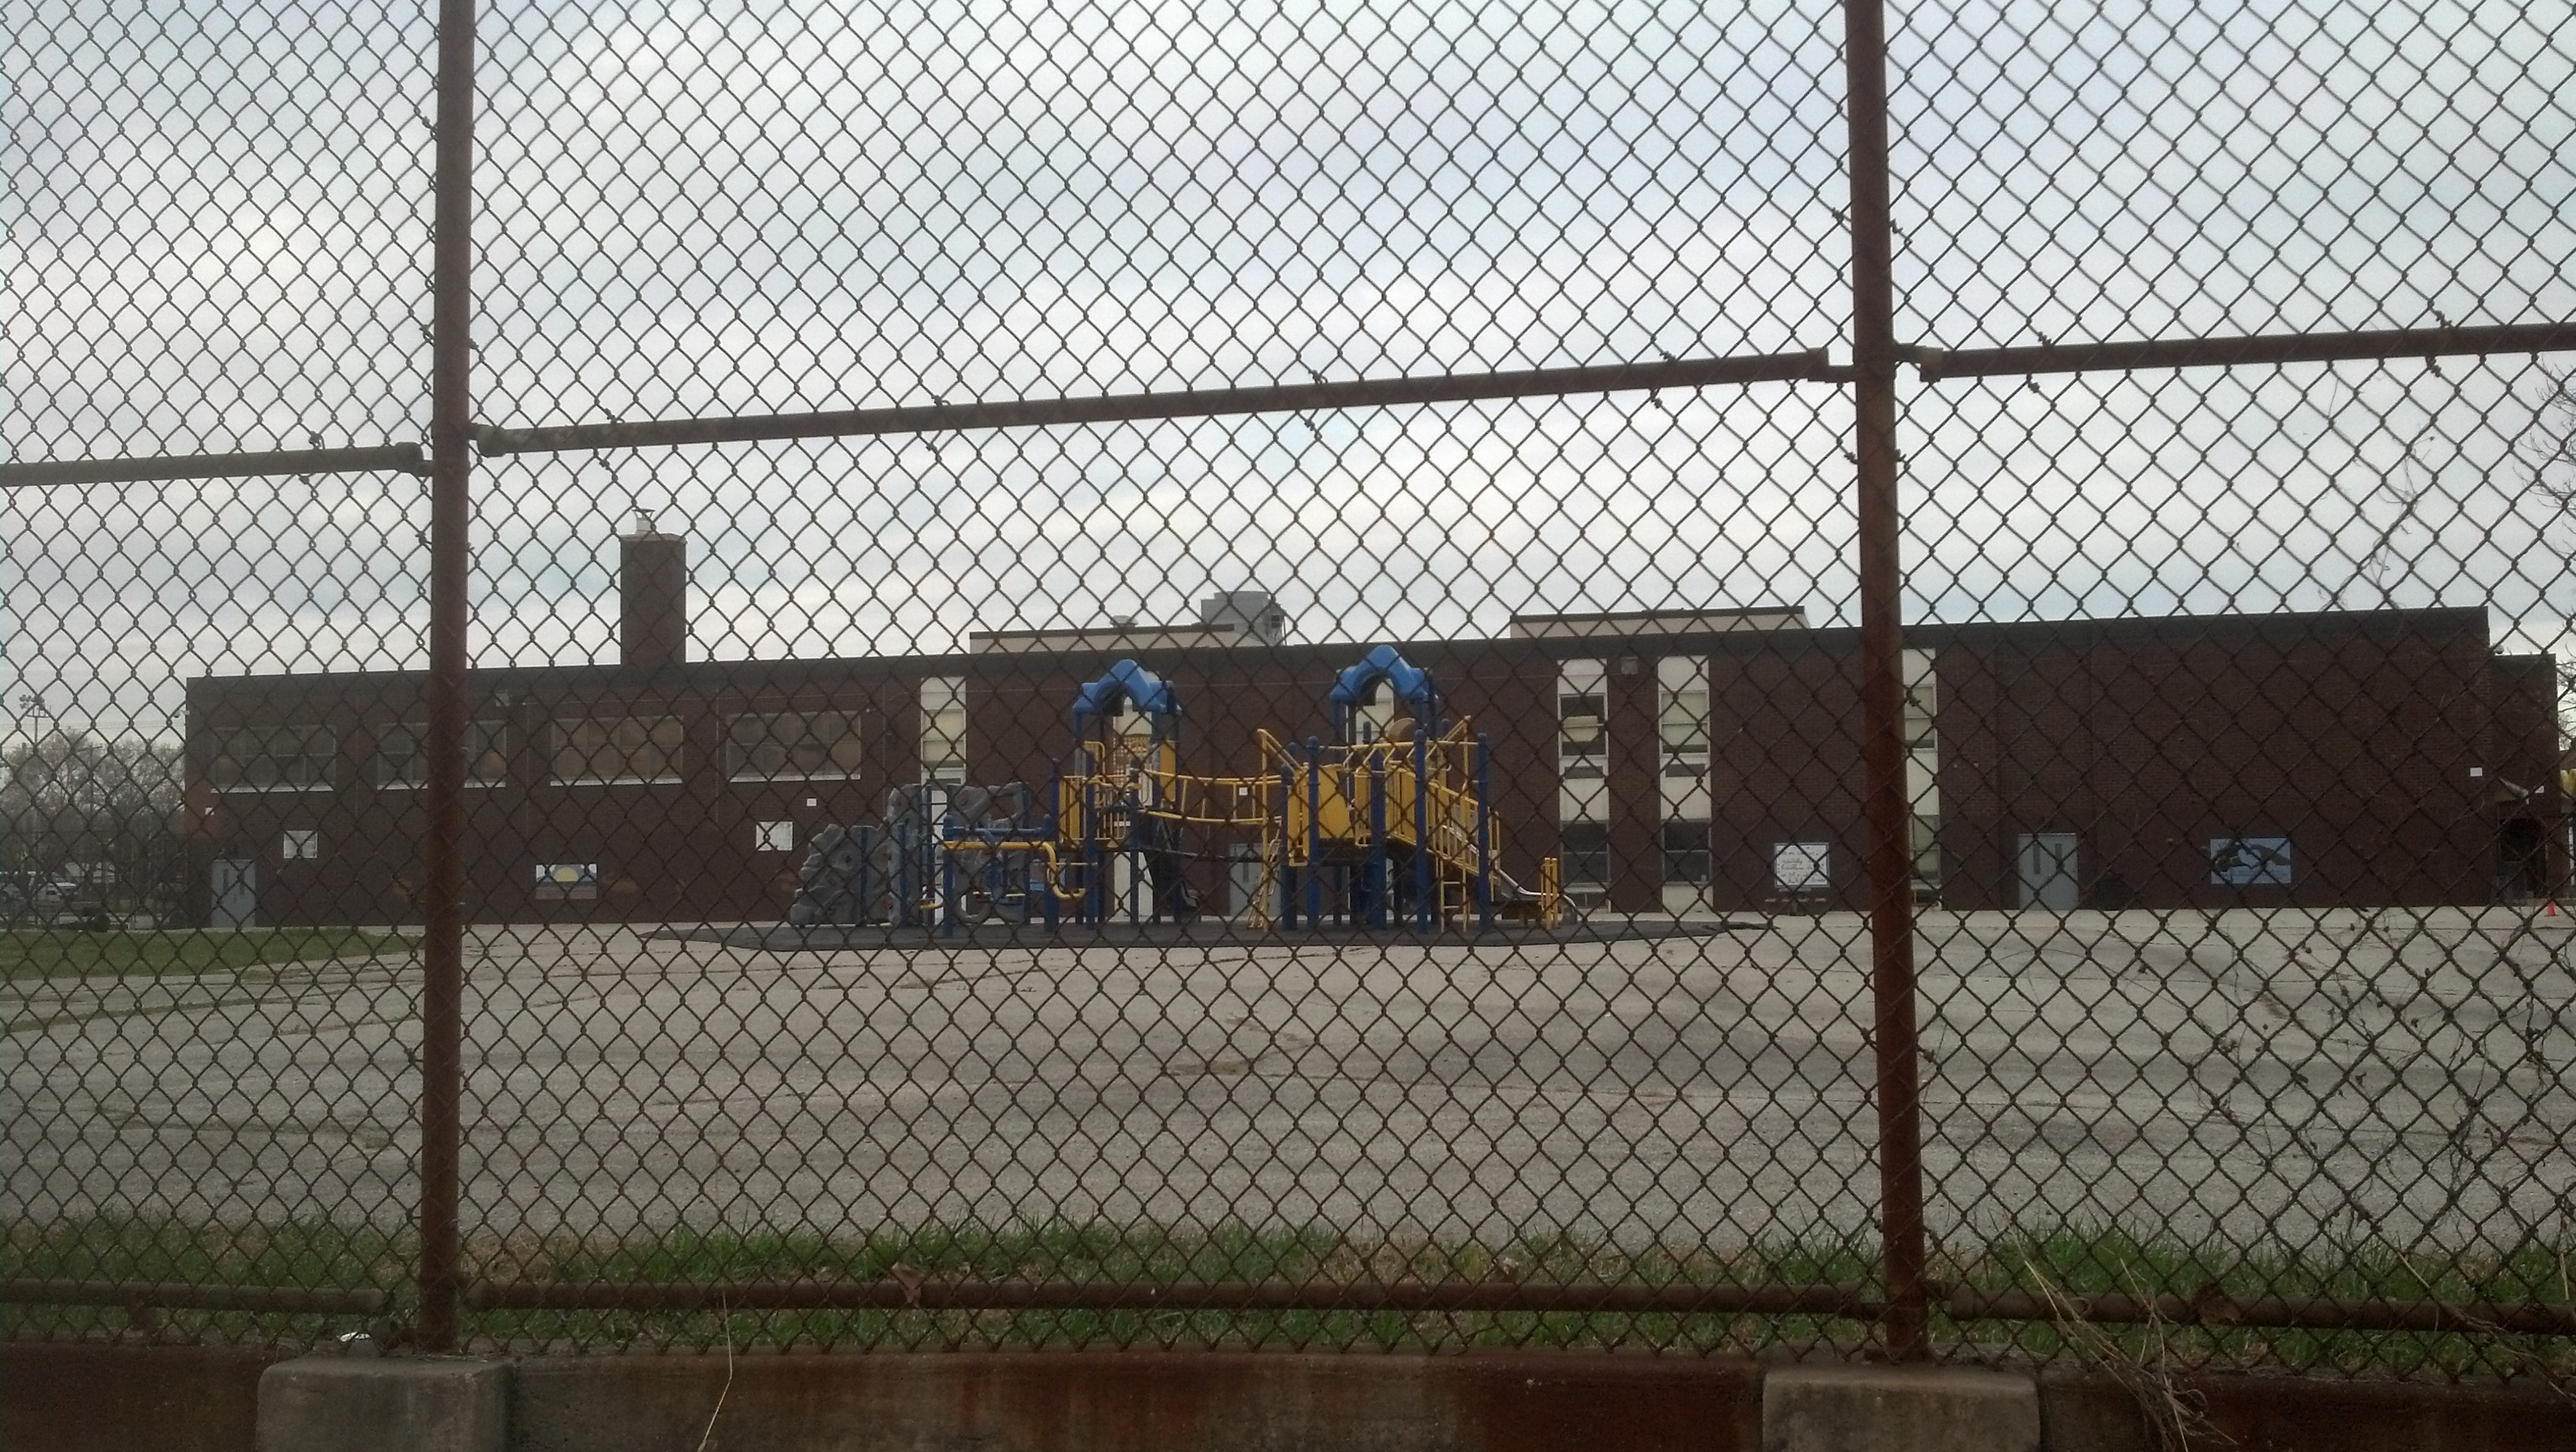 Closed-Off School Playground in Philidelphia (Michael Froehlich, zoraplays.com)